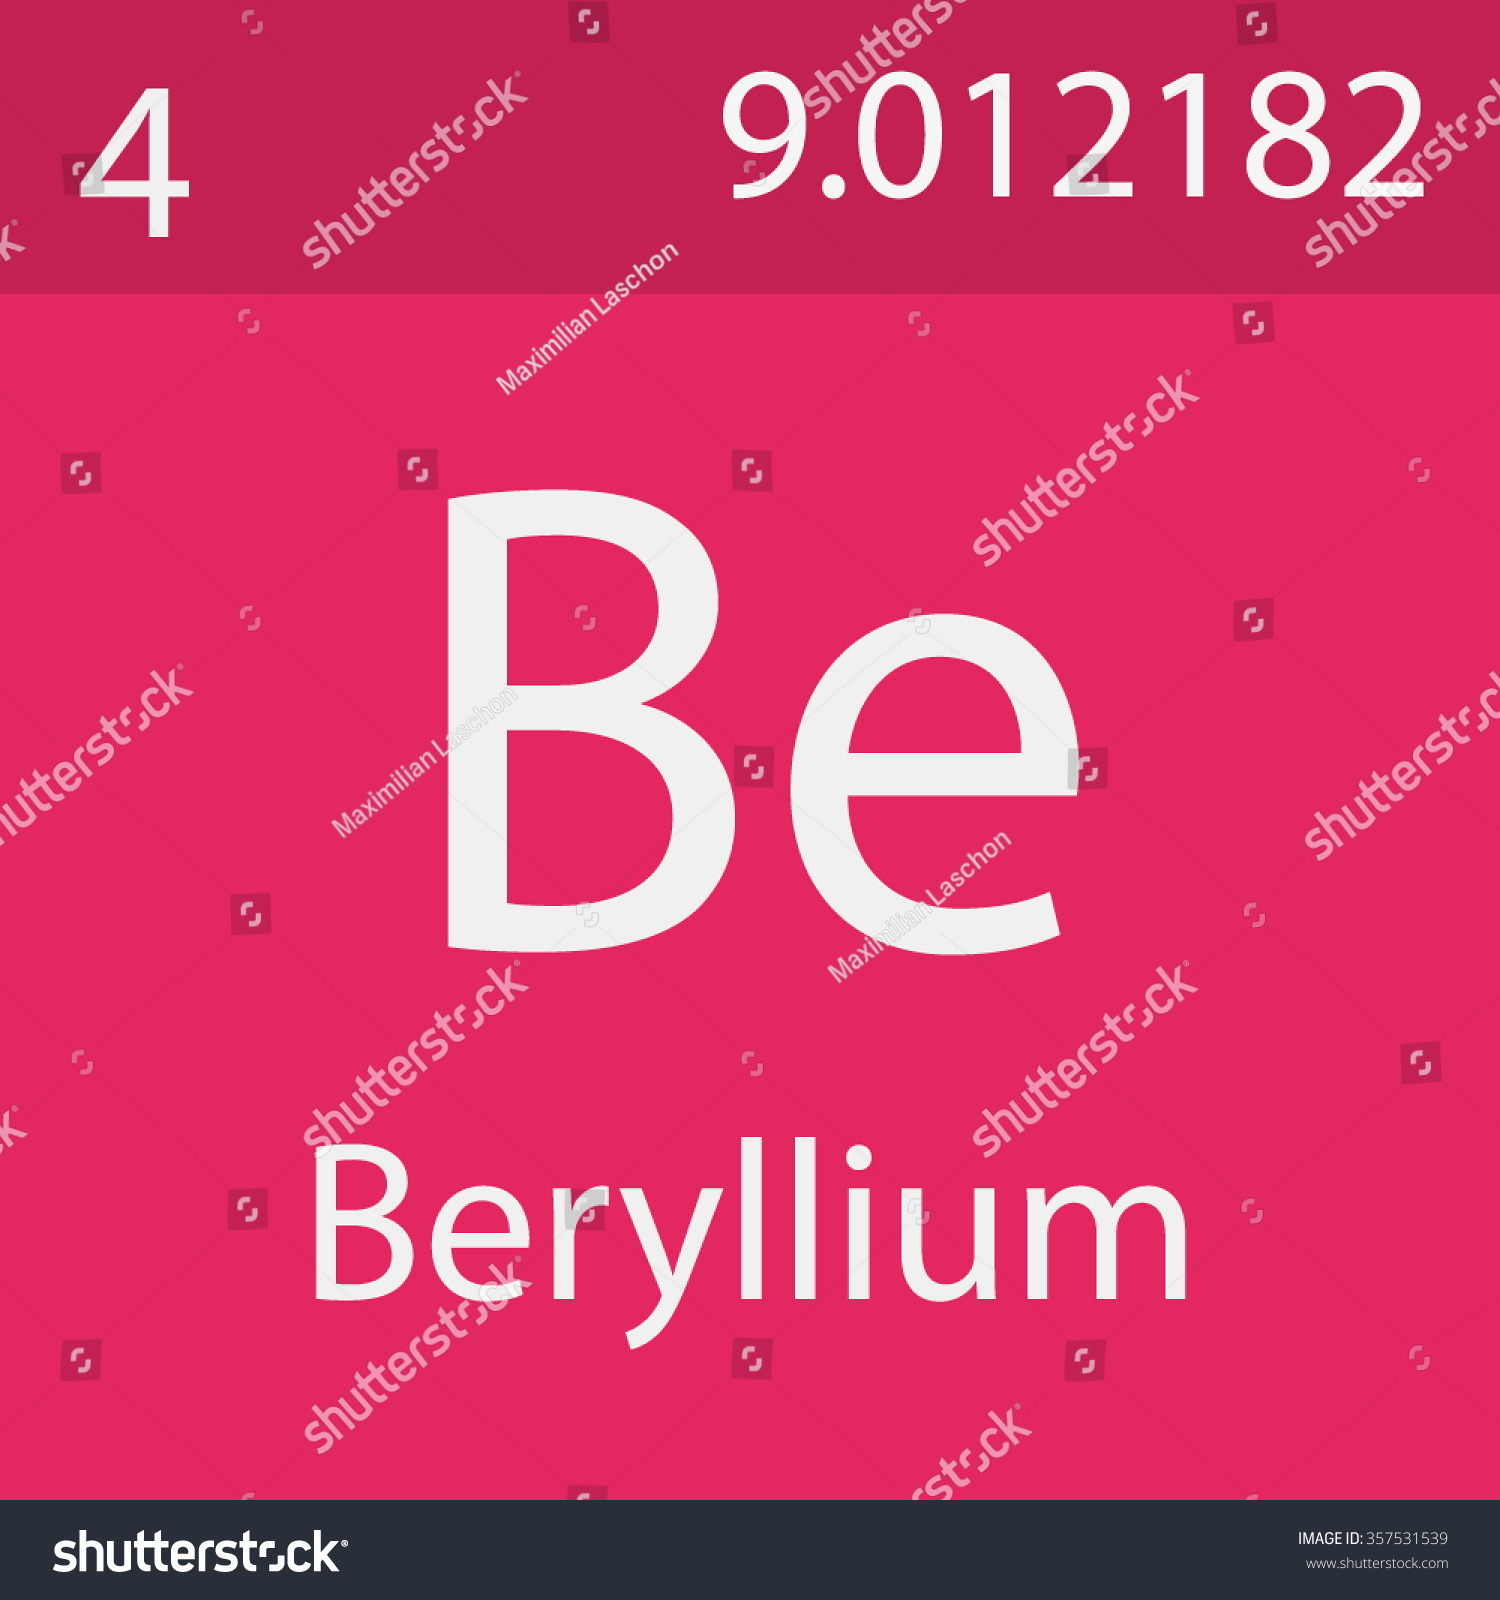 Beryllium chemical symbol stock vector 357531539 shutterstock beryllium chemical symbol buycottarizona Image collections